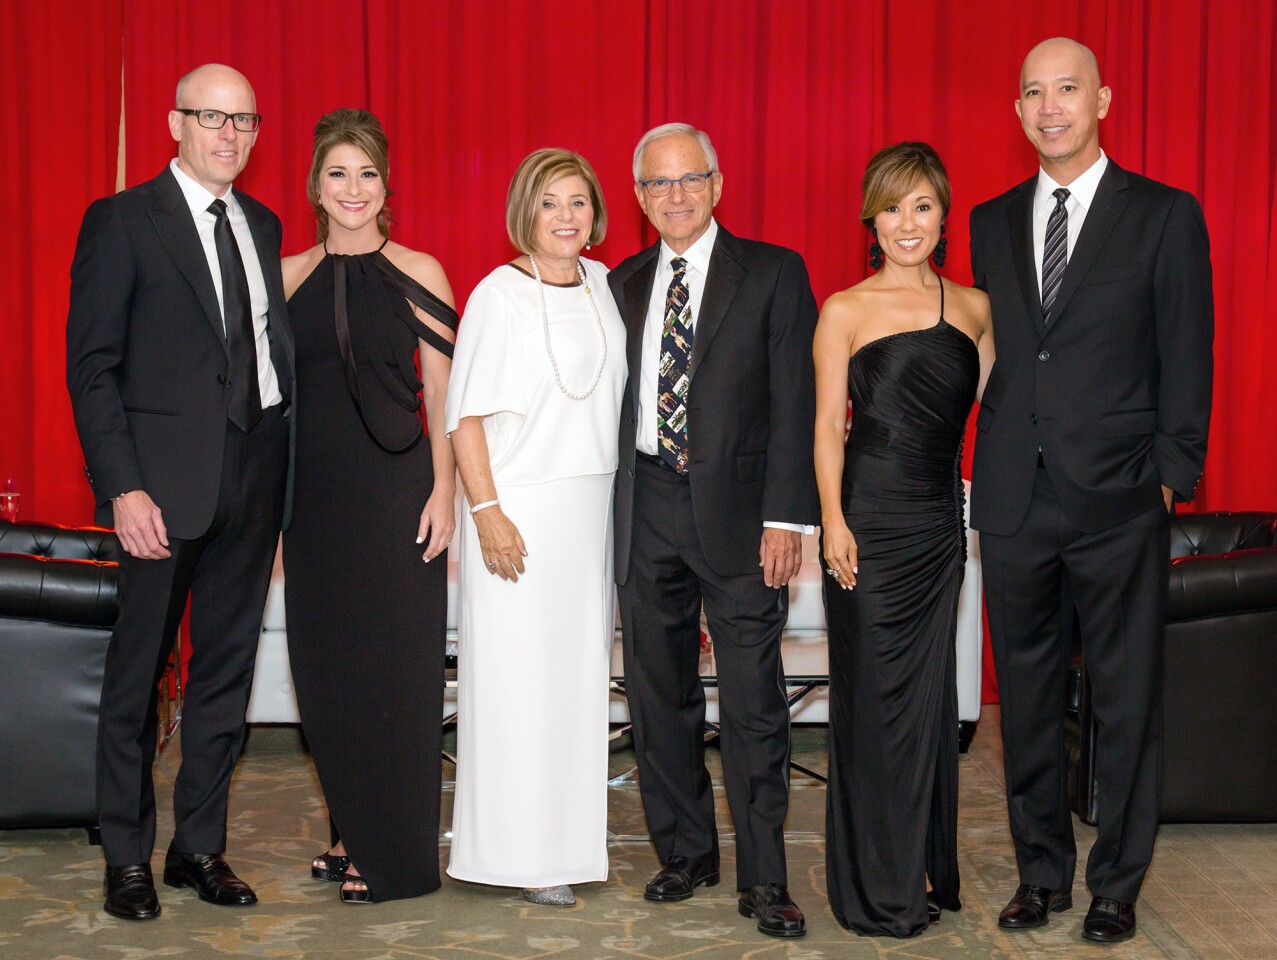 """""""A Celebration of Children: Black and White Ball"""" welcomed donors and chairs David Fisher, Michelle Fisher, Susan Leibel, Dennis Leibel and Dana Chou and Tom Chou to raise funds for Court Appointed Special Advocates (CASA) of Orange County."""